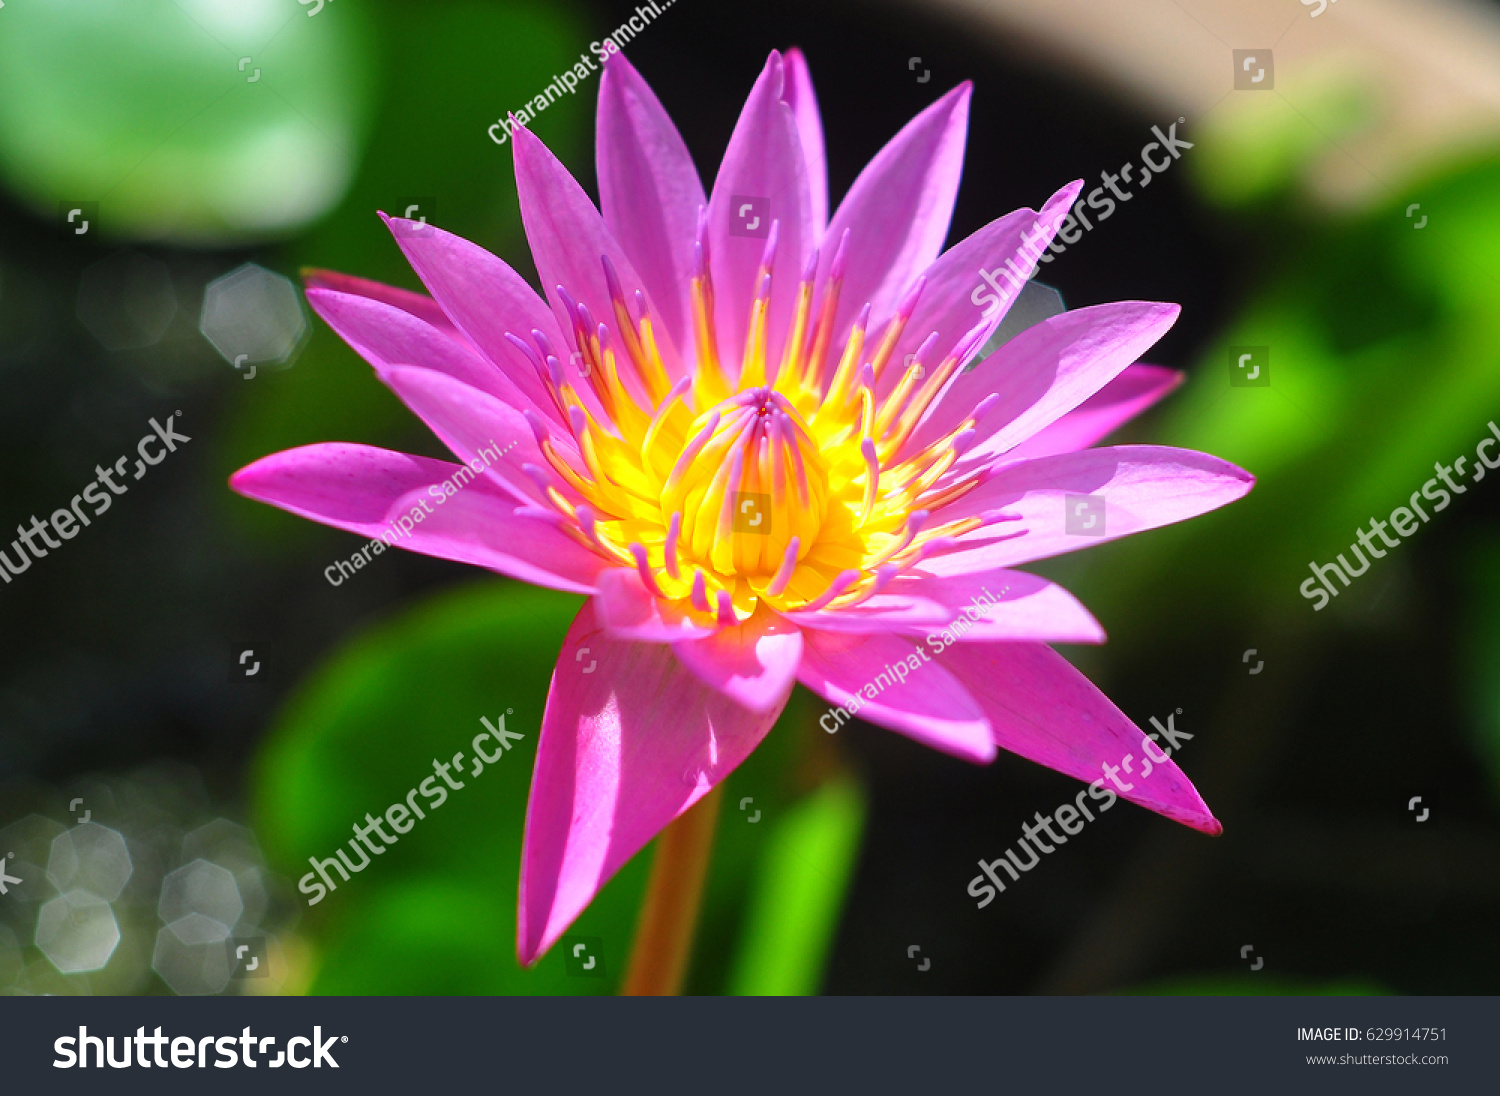 Lotus flower blooming ez canvas id 629914751 izmirmasajfo